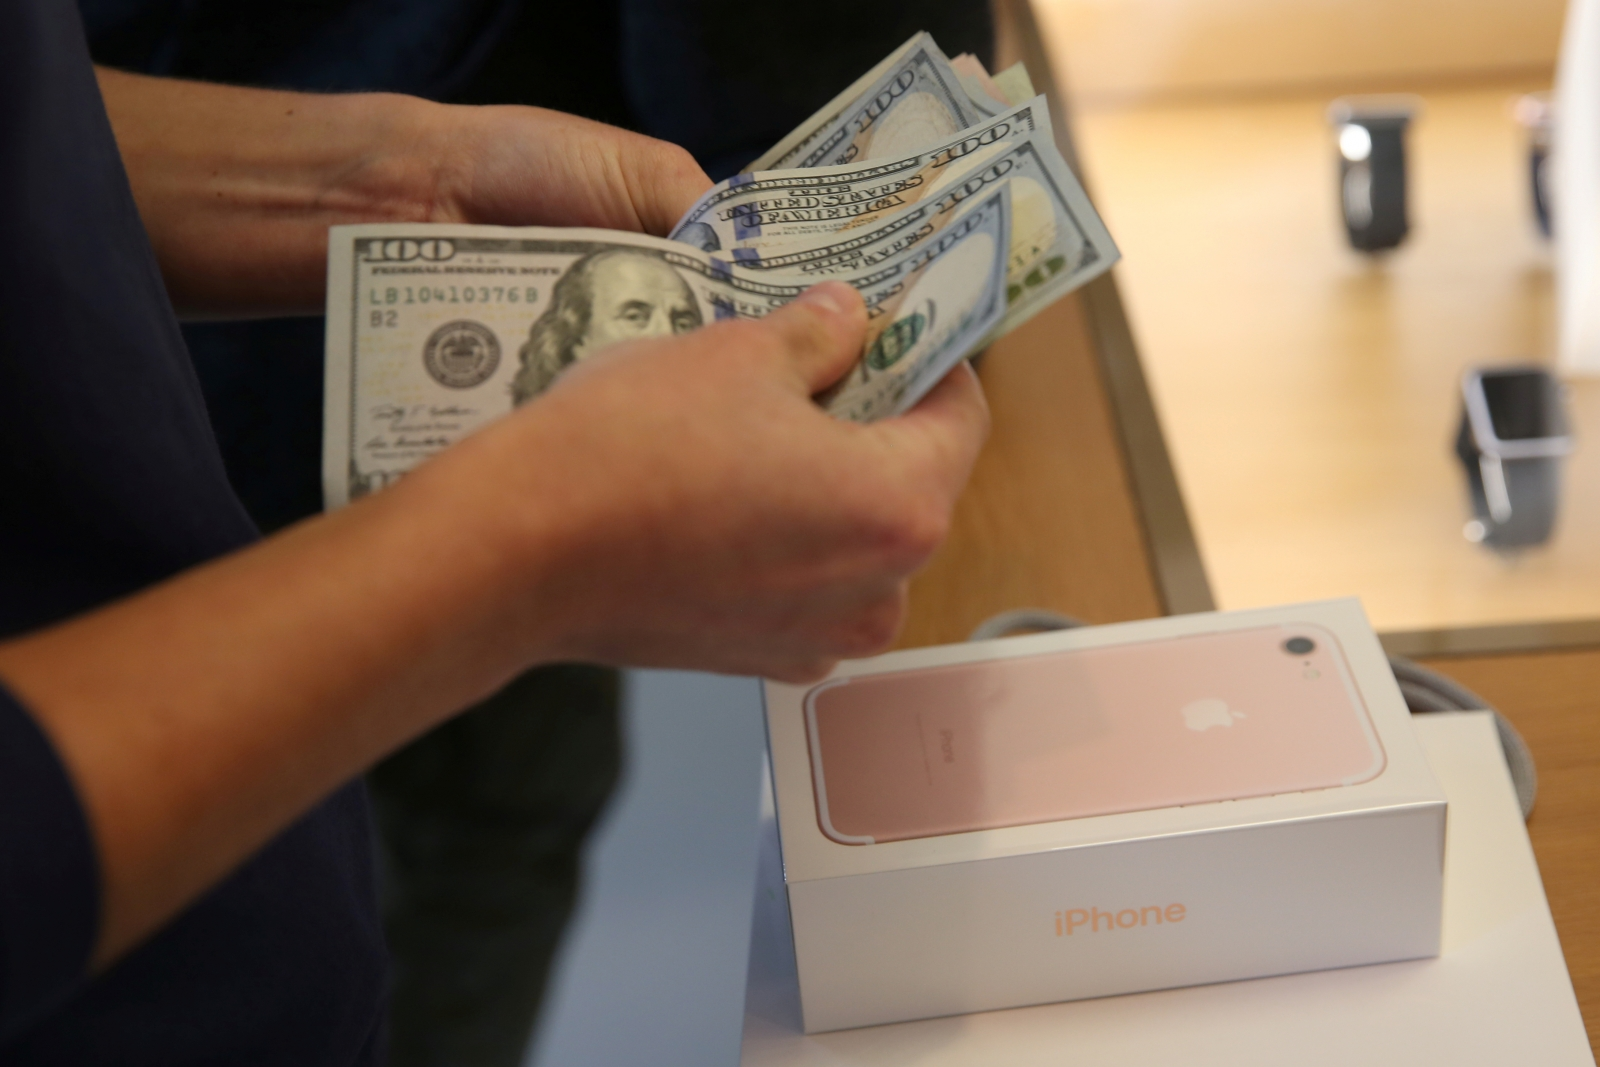 iPhone 7 being bought in Apple Store